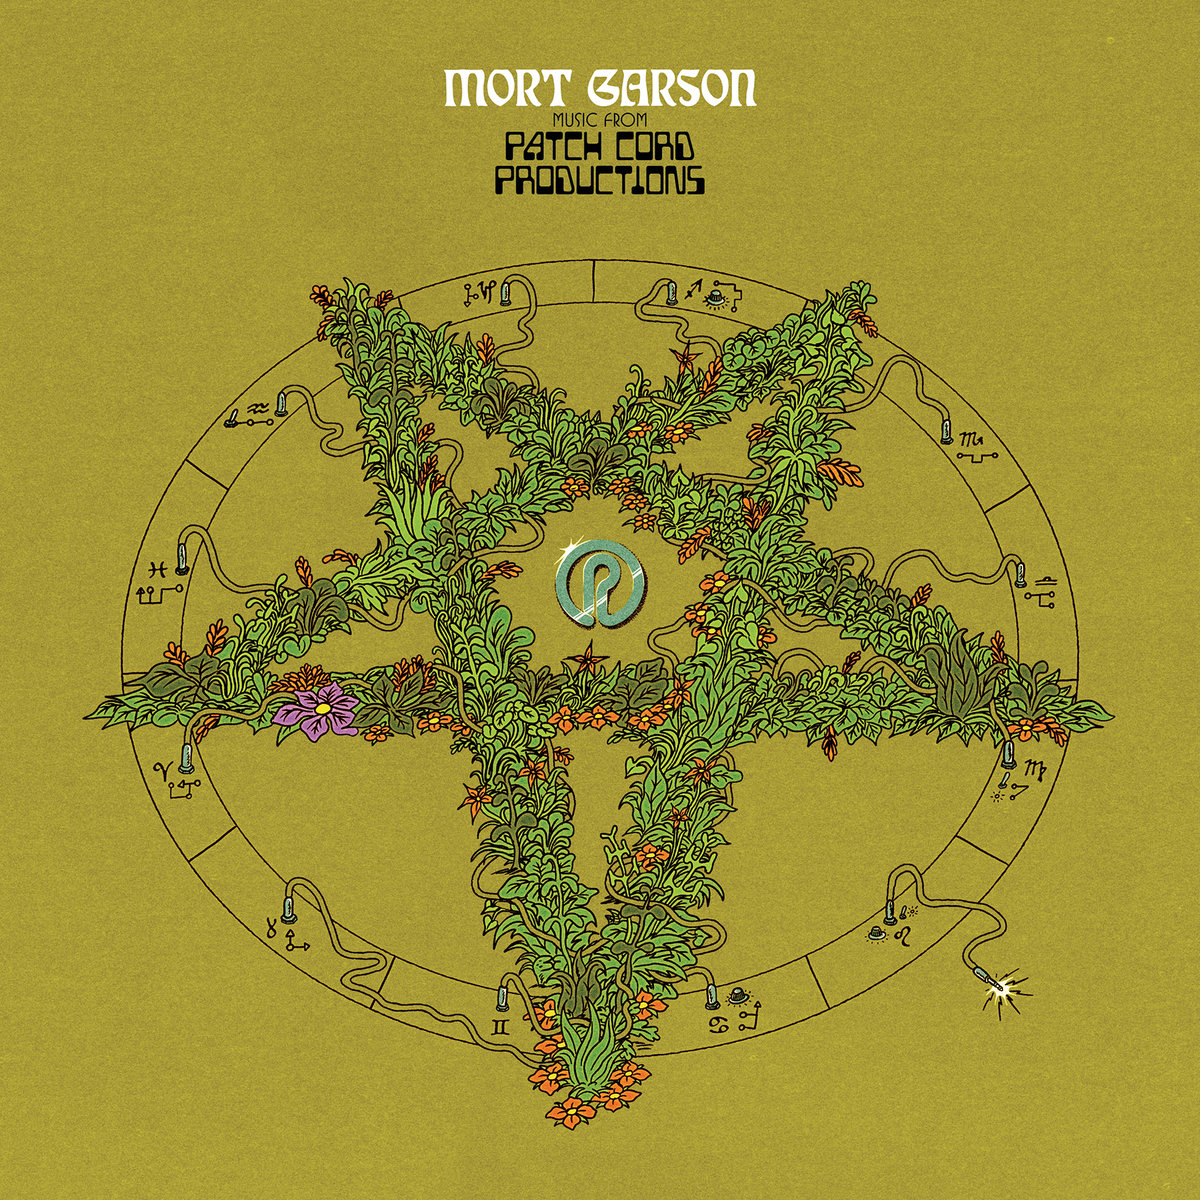 Mort Garson - Music From Patch Cord Productions [LP]